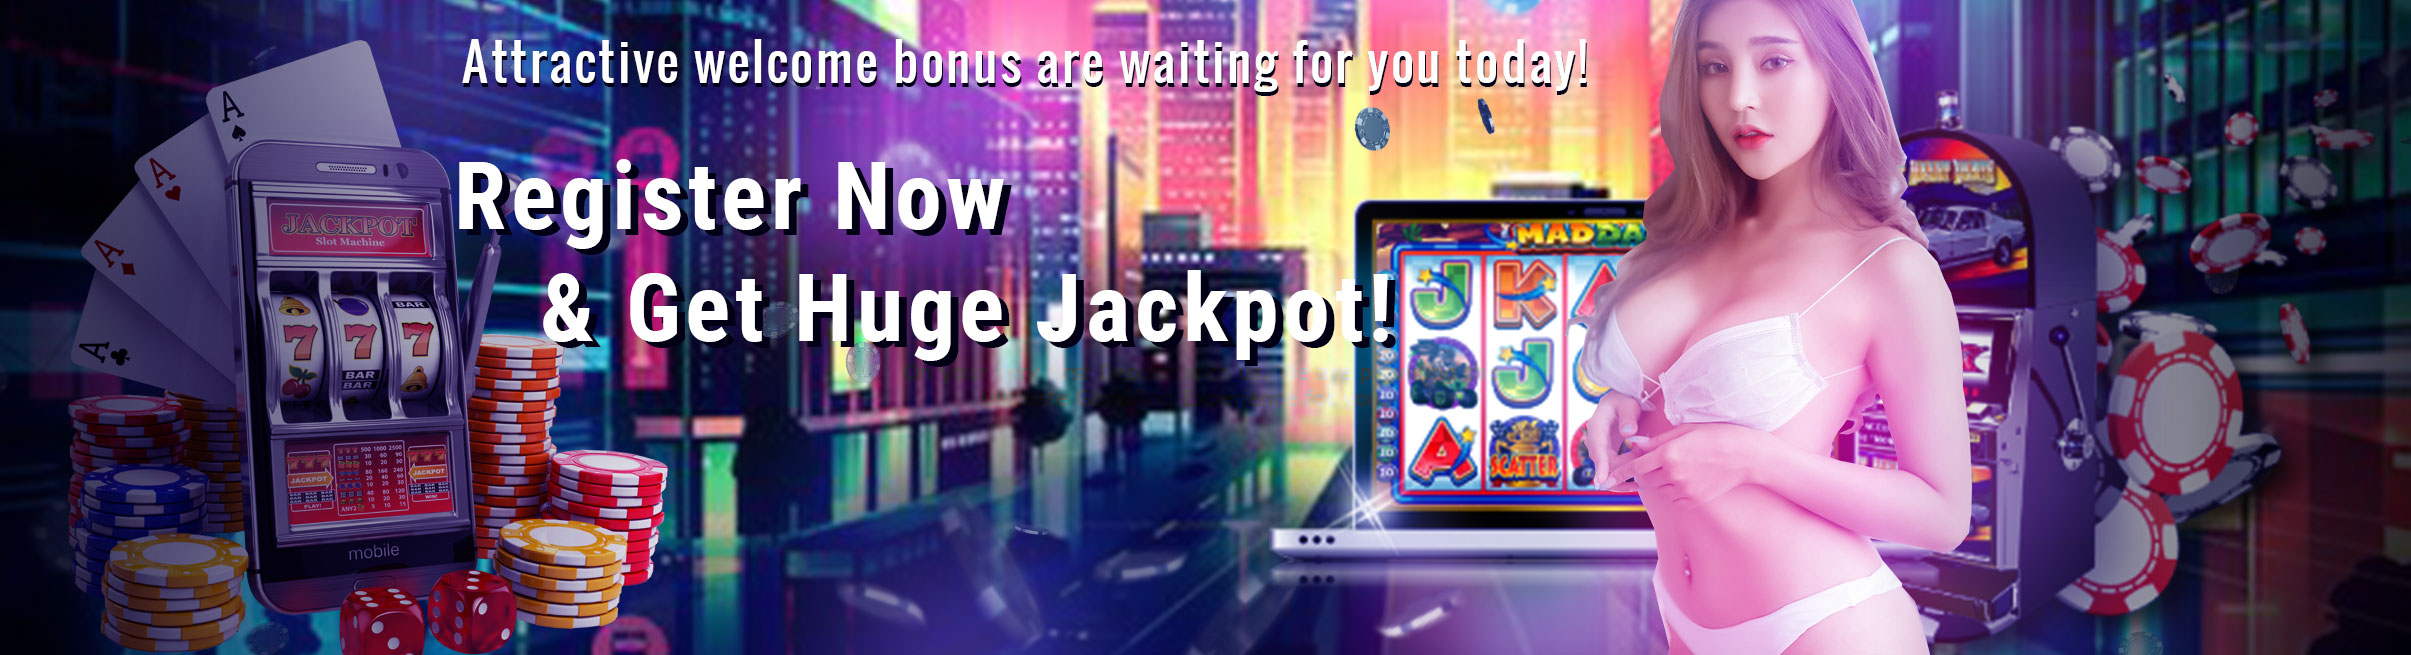 GOGBETSG - Trusted Online Casino Singapore - Get Up To 30% Bonus